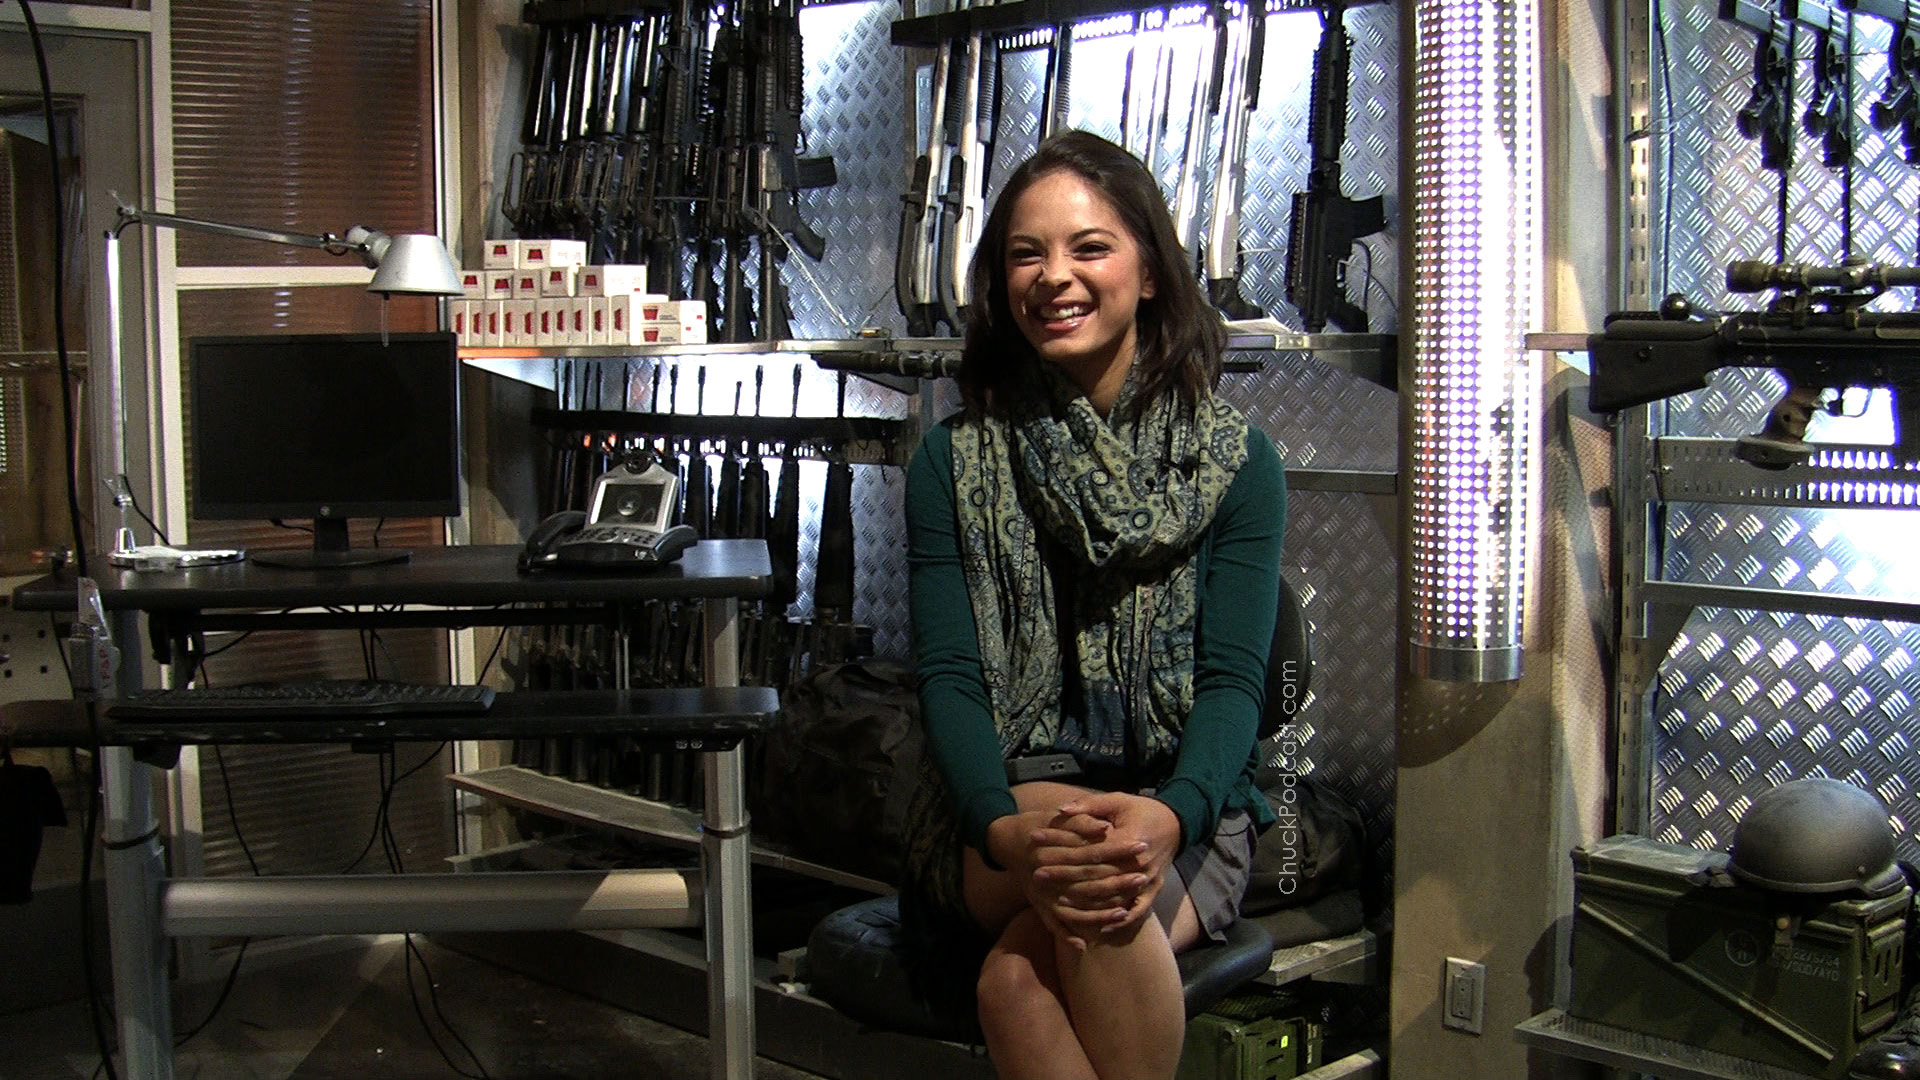 Gray interviews Kristin Kreuk on the set of Chuck.